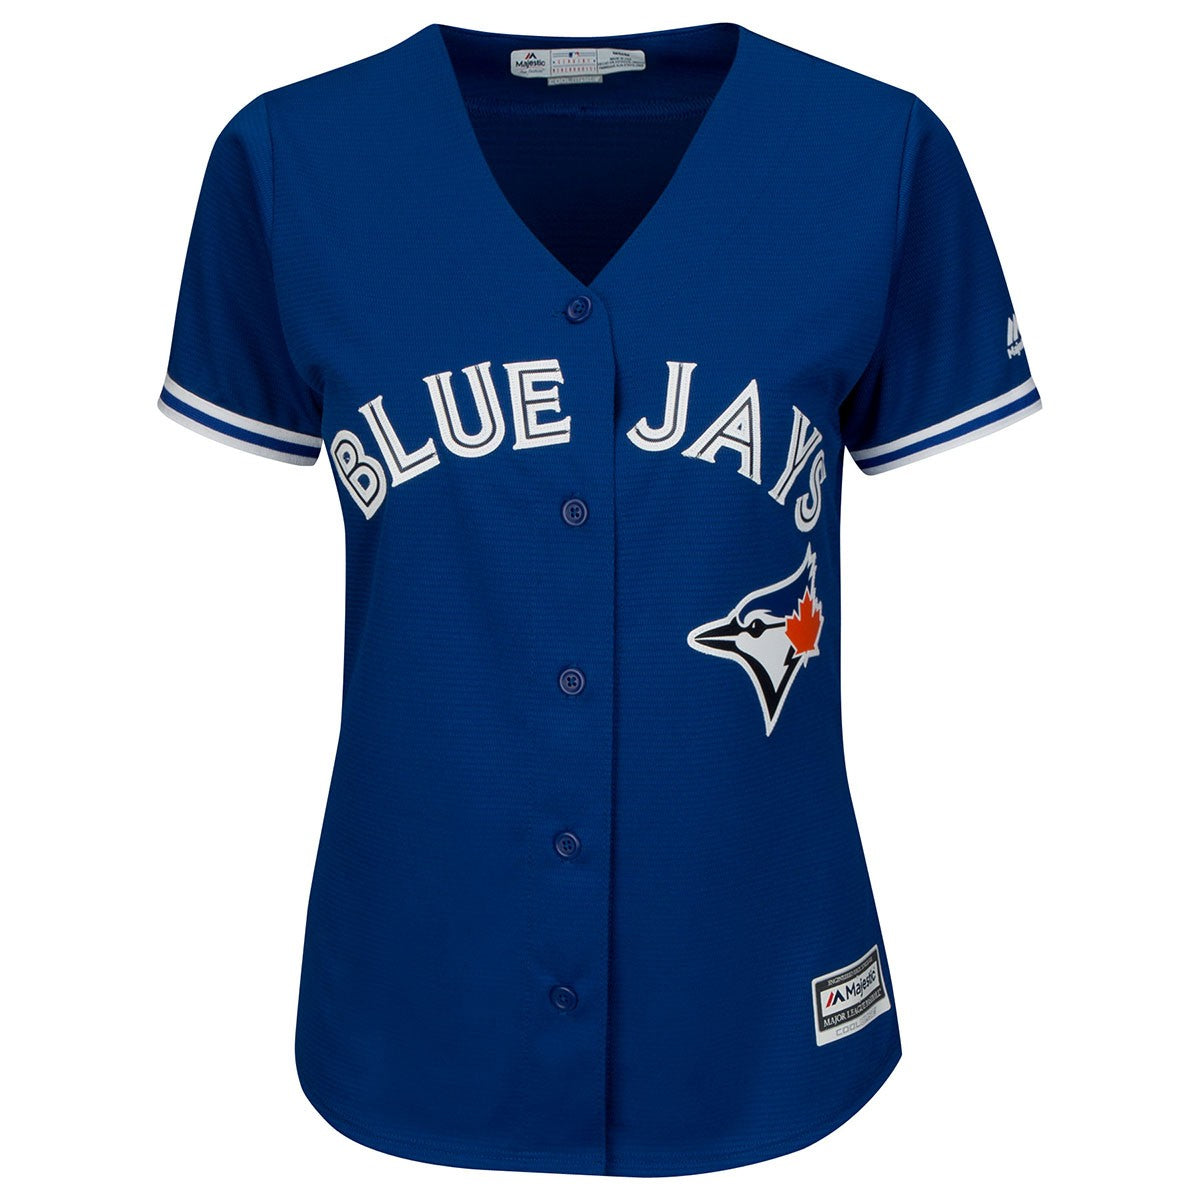 Toronto Blue Jays Women's Cool Base Replica Women's Alternate Jersey by Majestic